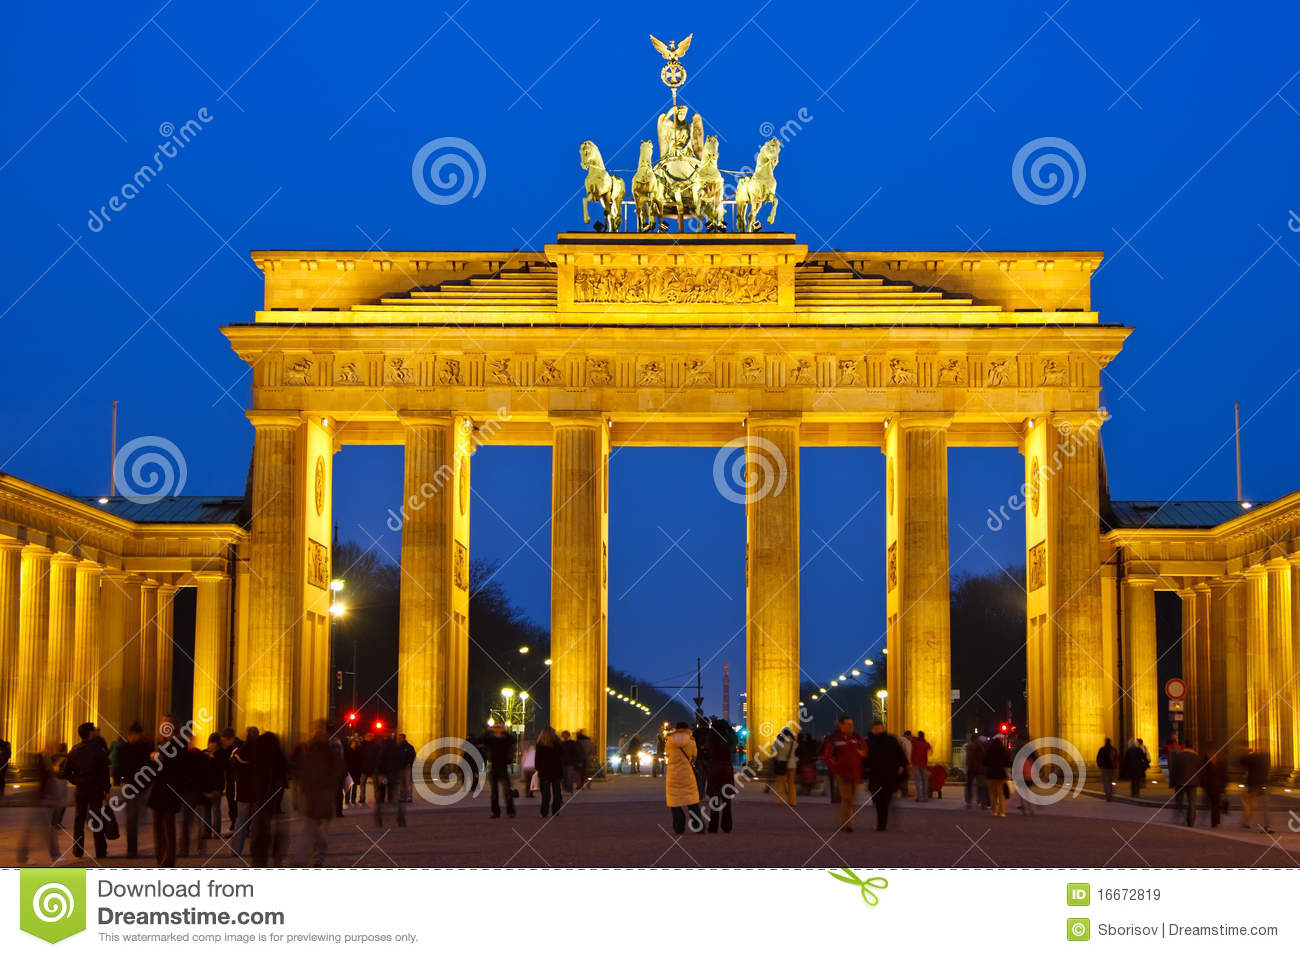 brandenburg gate at night - photo #46